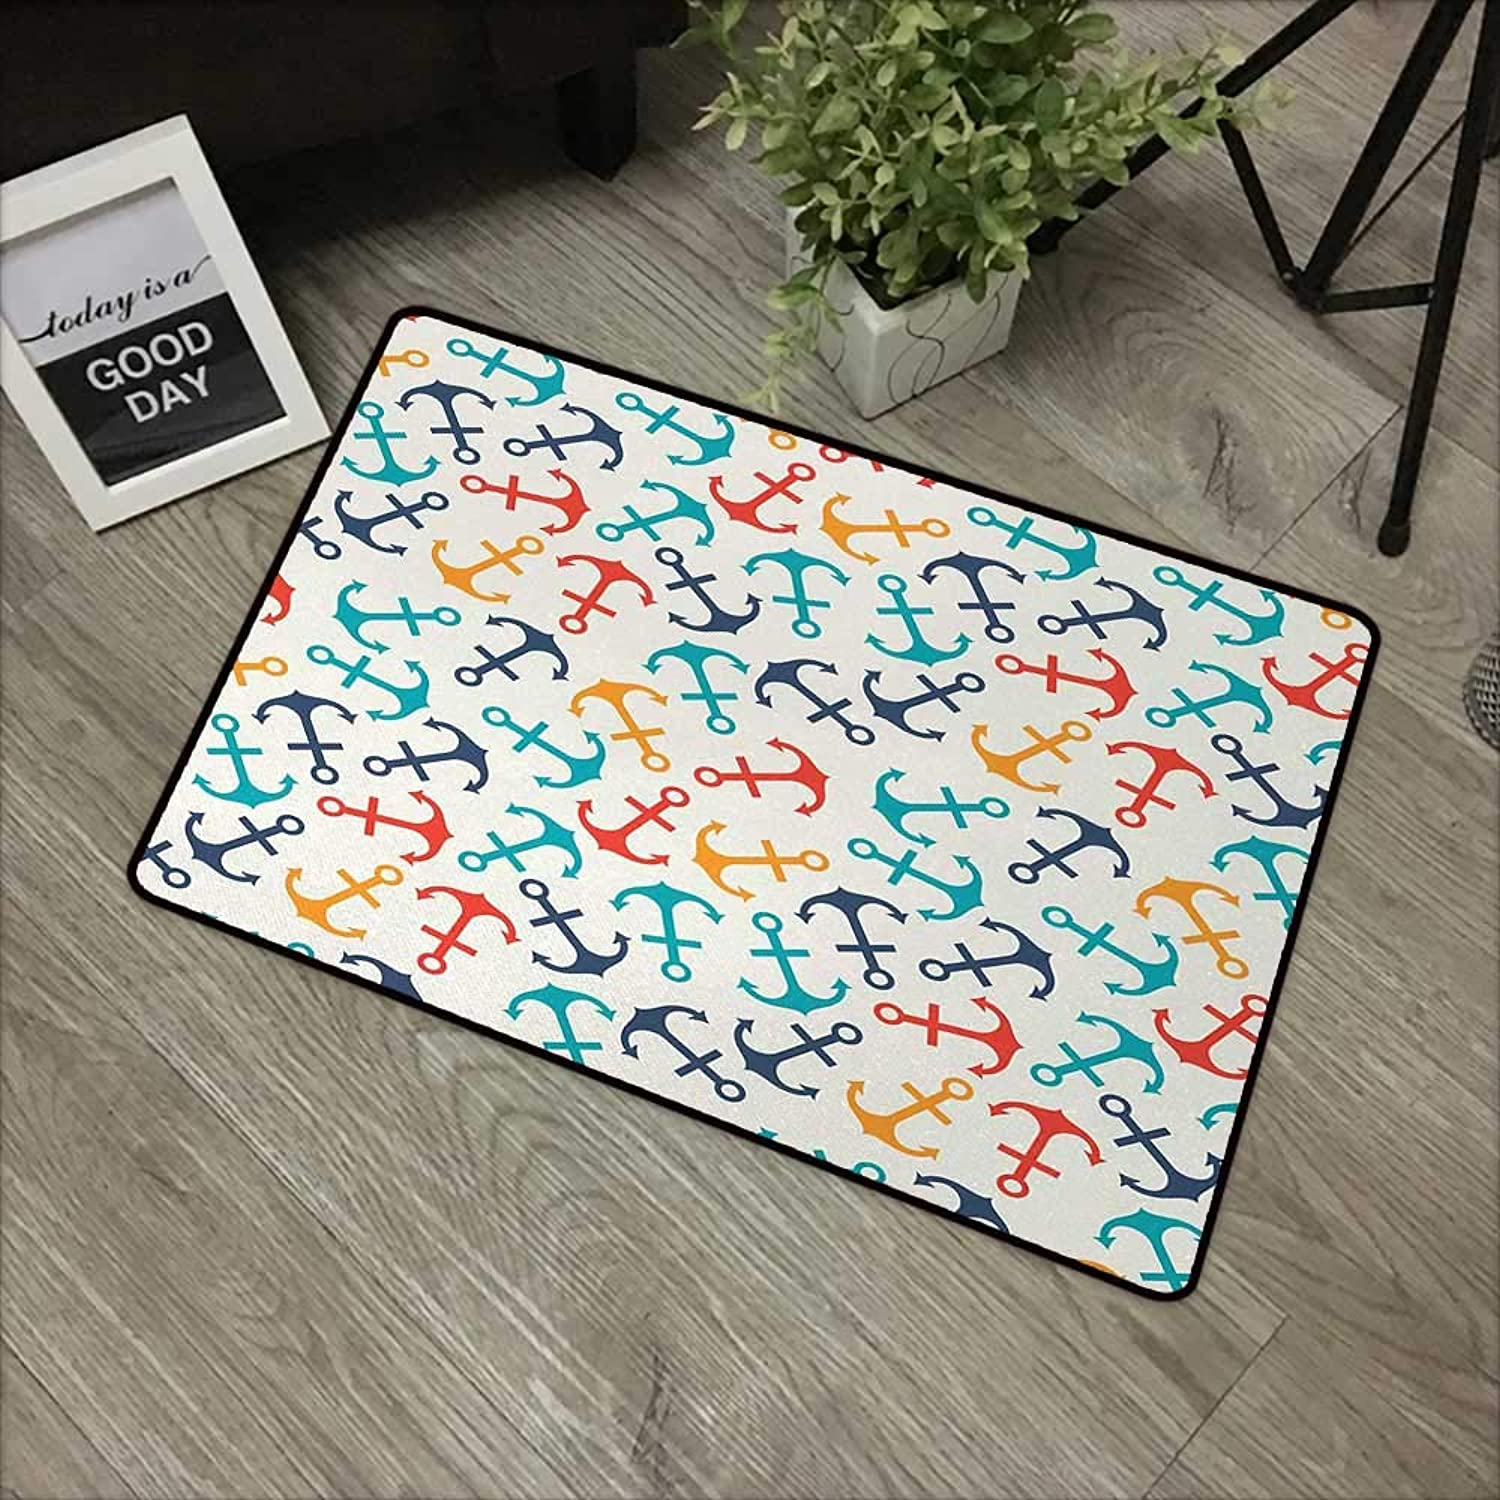 Bathroom Anti-Slip Door mat W31 x L47 INCH Anchor,Anchor Shape in Lines Tropics Getaway Transport Decorative Endless Repeat,Beige Multicolor Easy to Clean, no Deformation, no Fading Non-Slip Door Mat